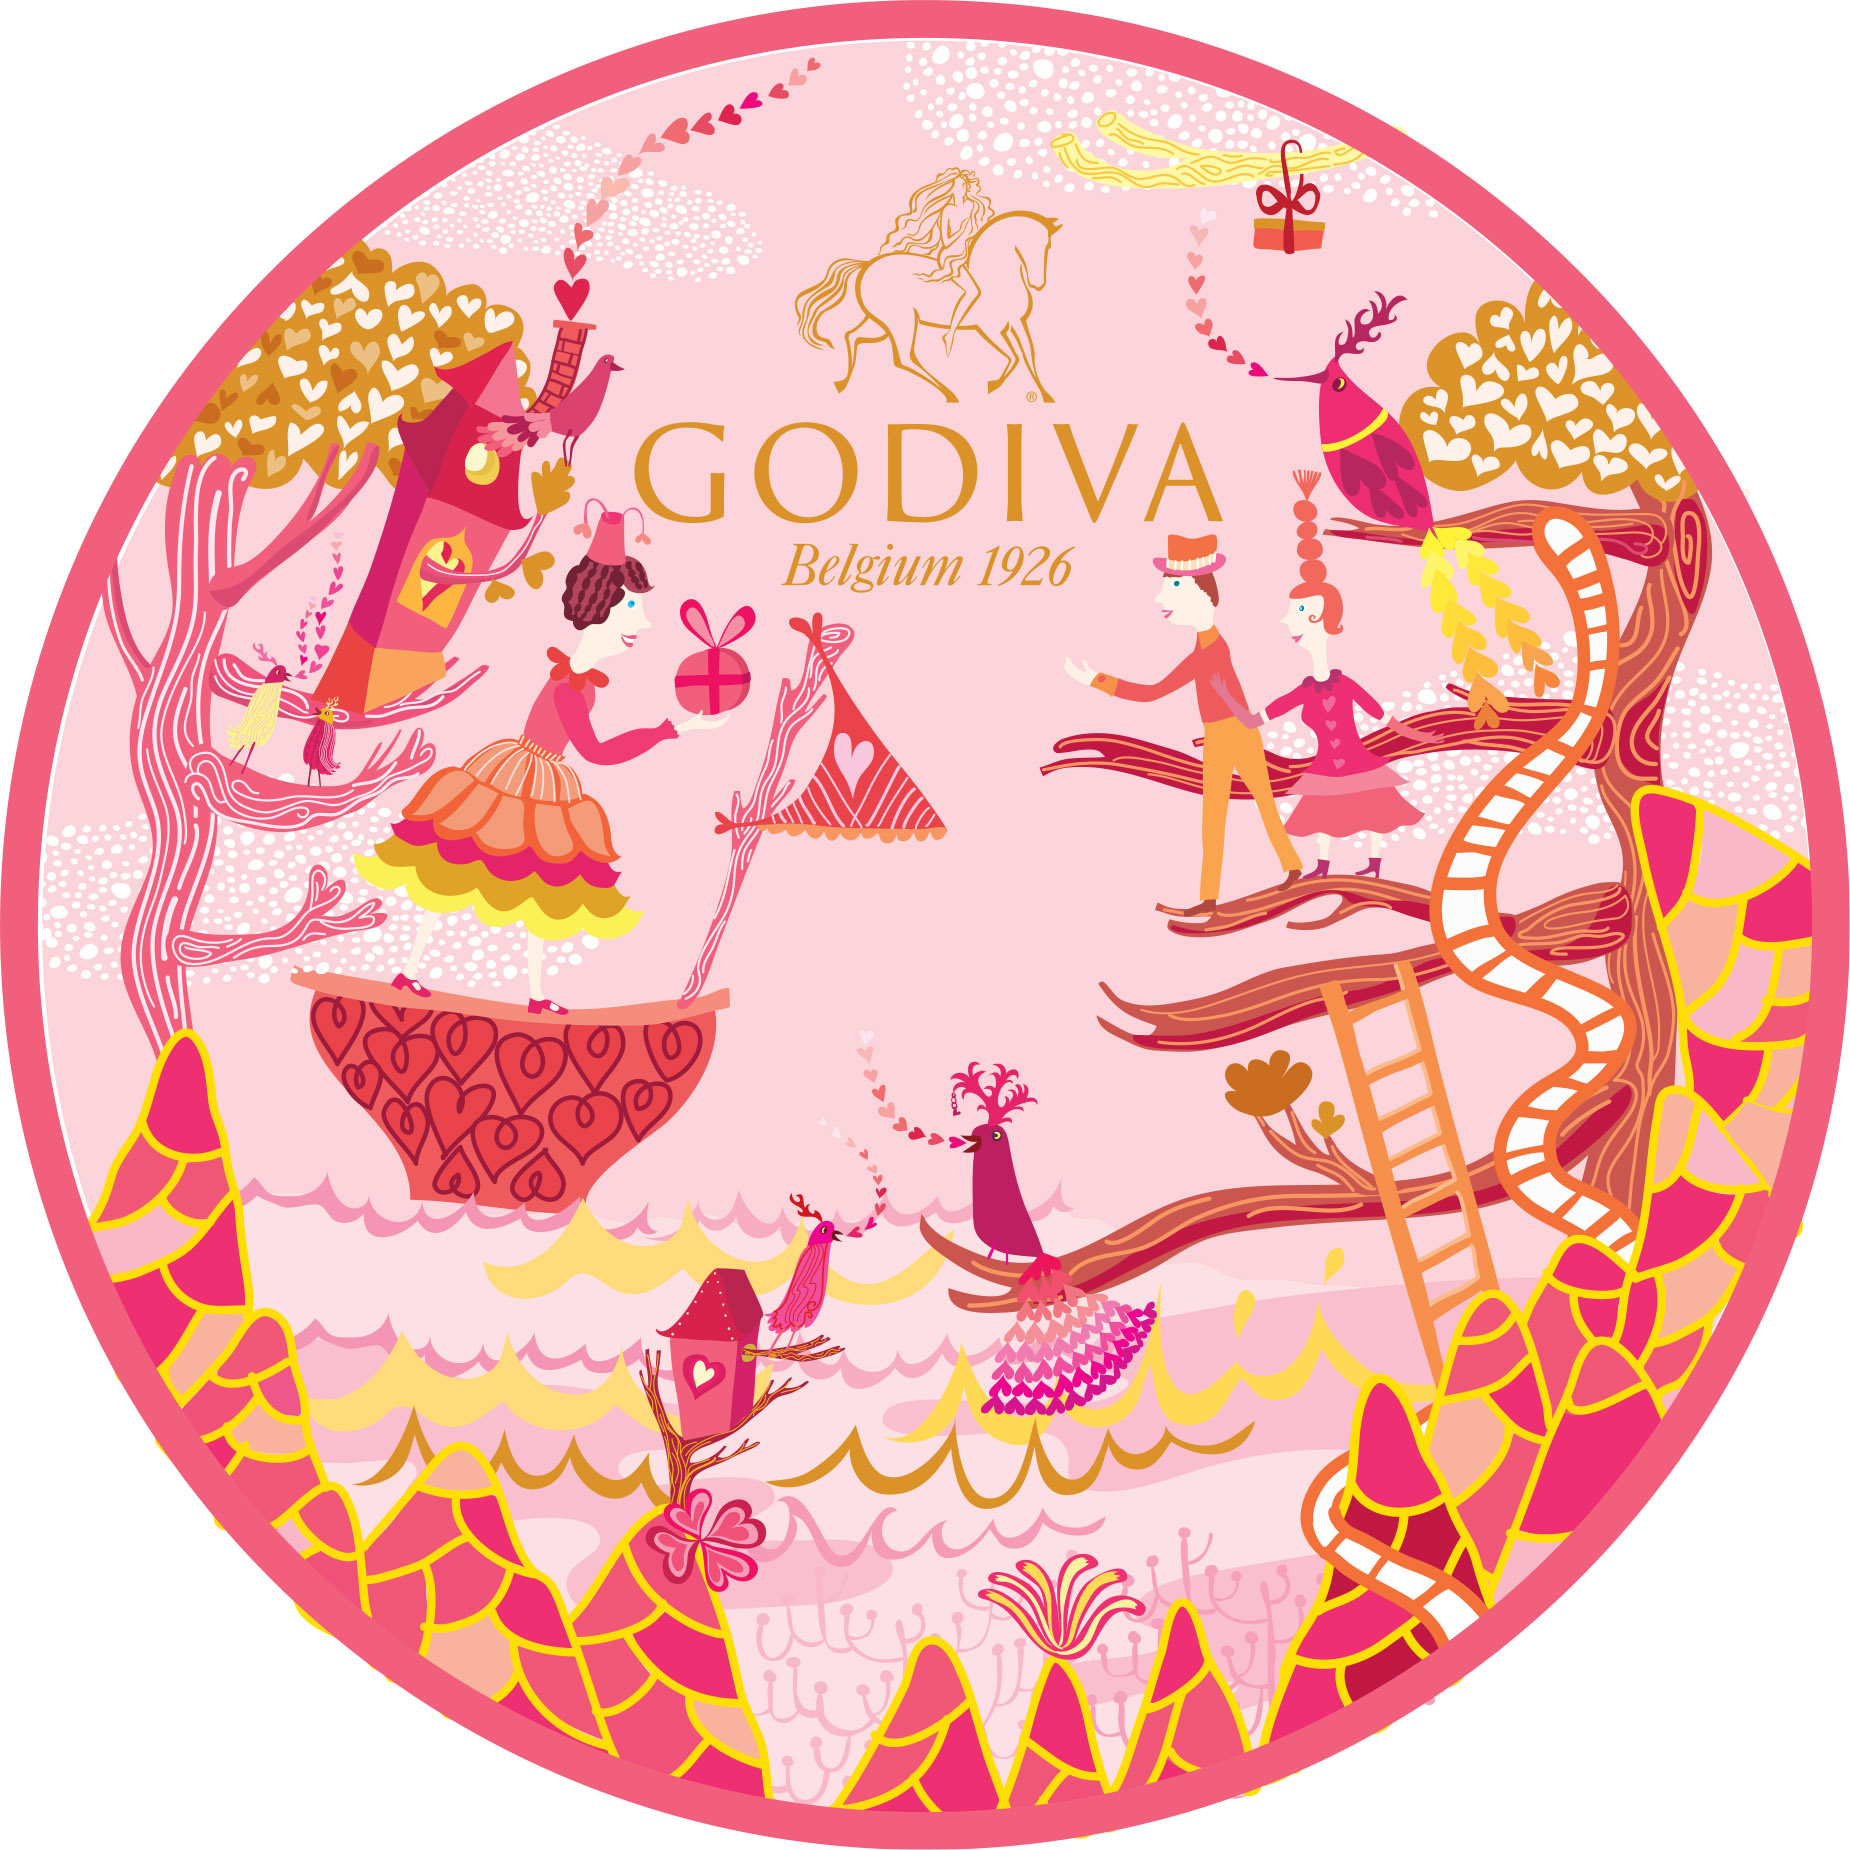 Copy of Godiva Valentine's Day packaging